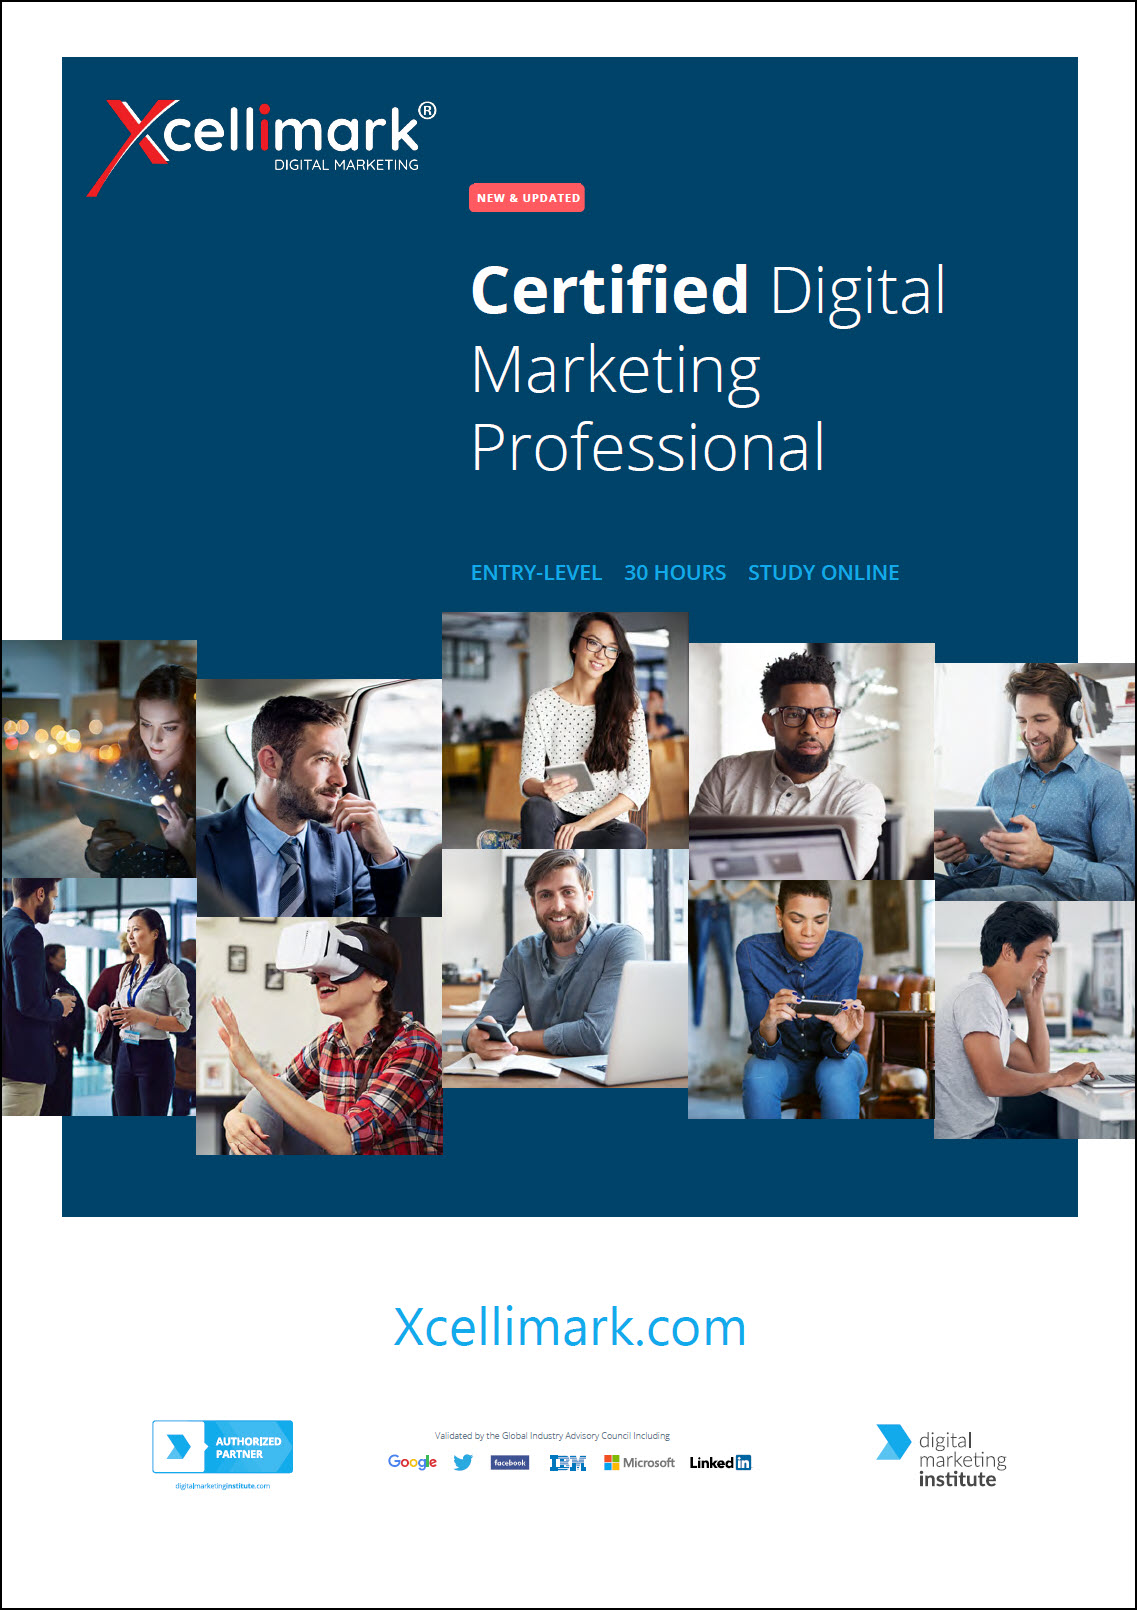 Certified Digital Marketing Professional Brochure